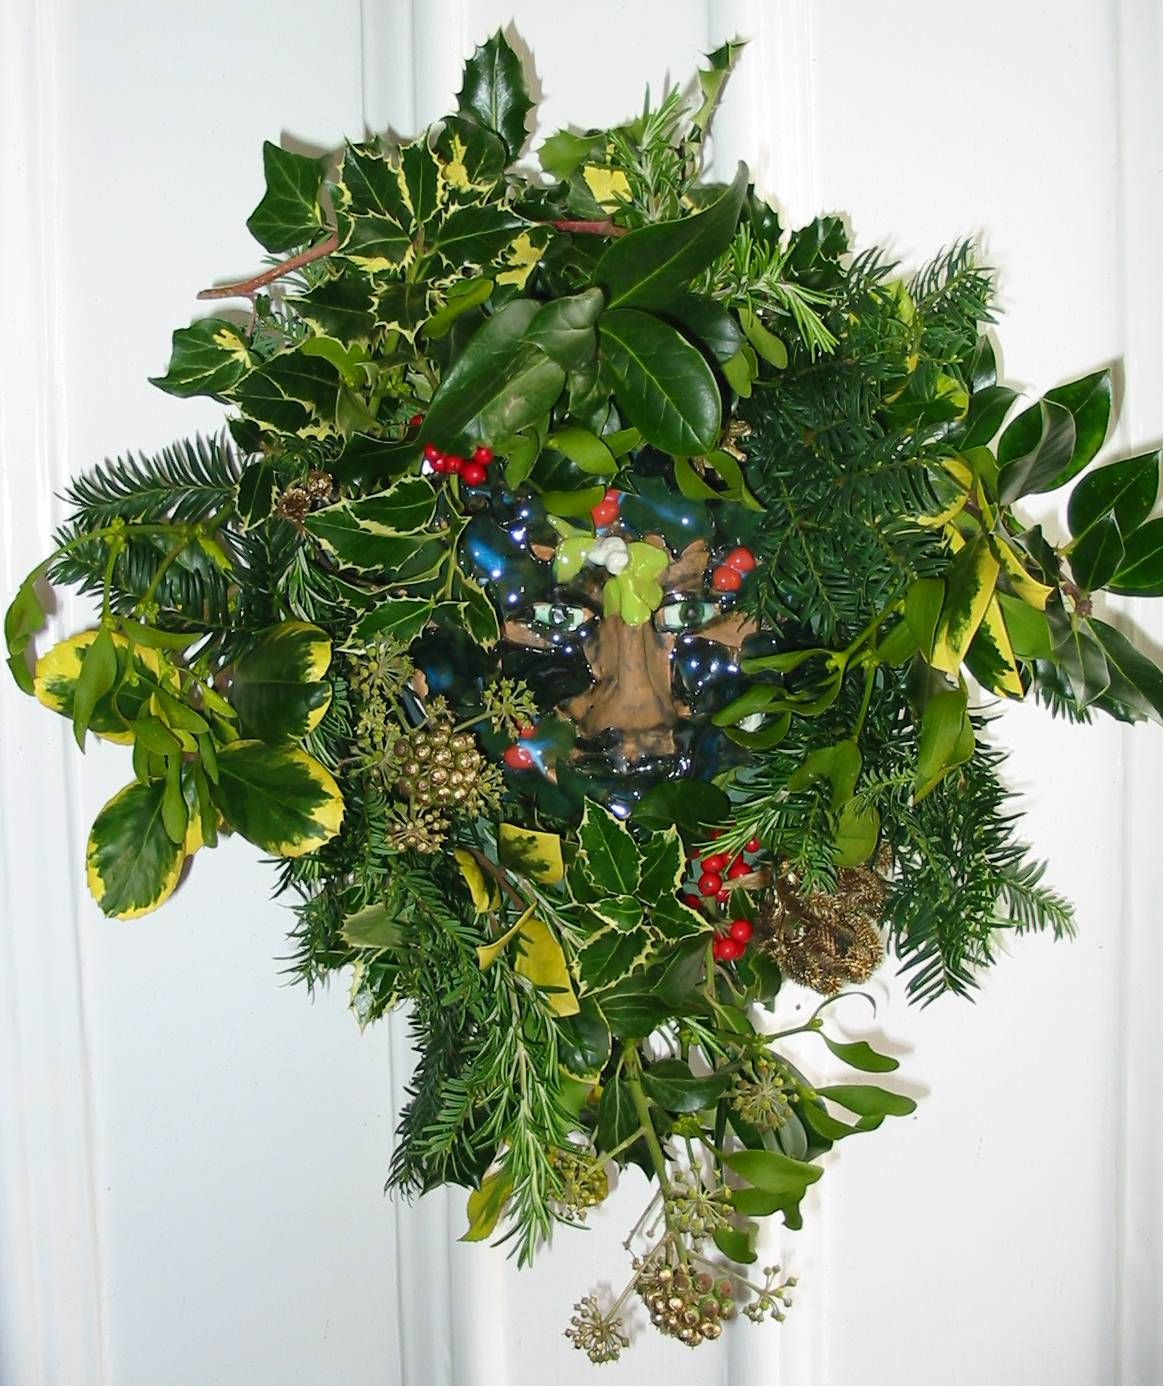 A ceramic Green Man mask put into the centre of the Christmas wreath for the door